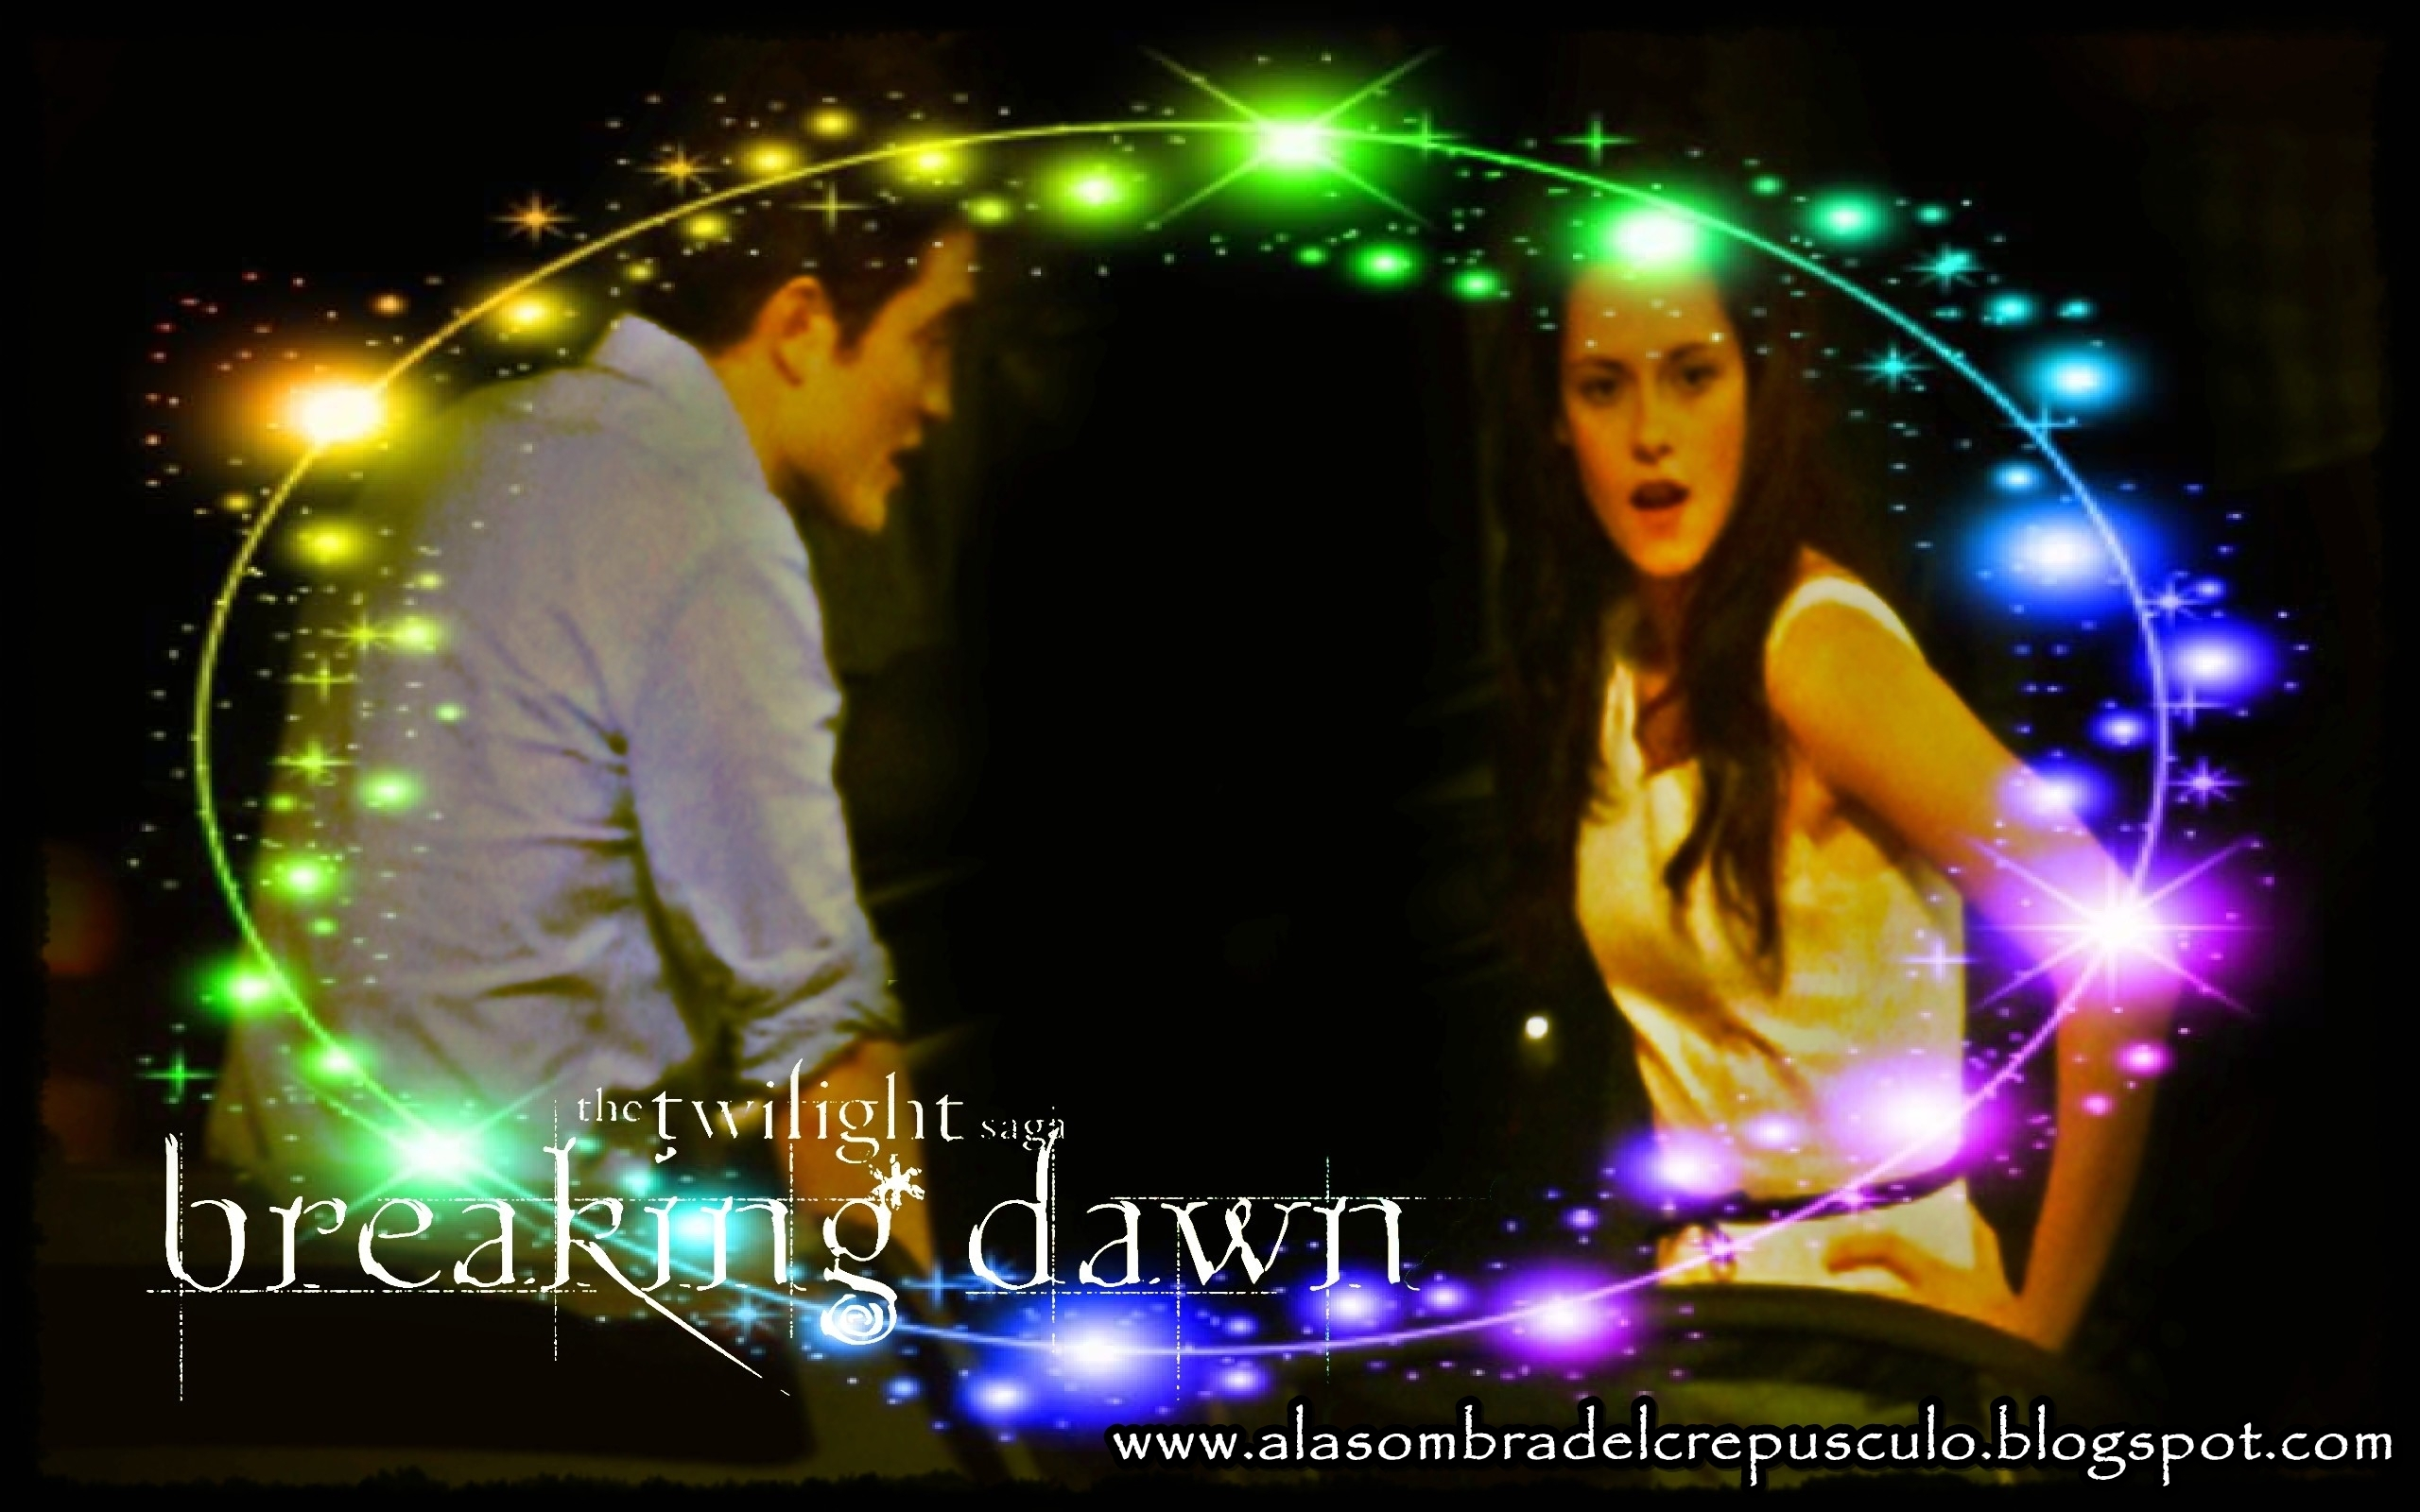 ... breaking dawn wallpaper for mobile phone twilight saga breaking dawn